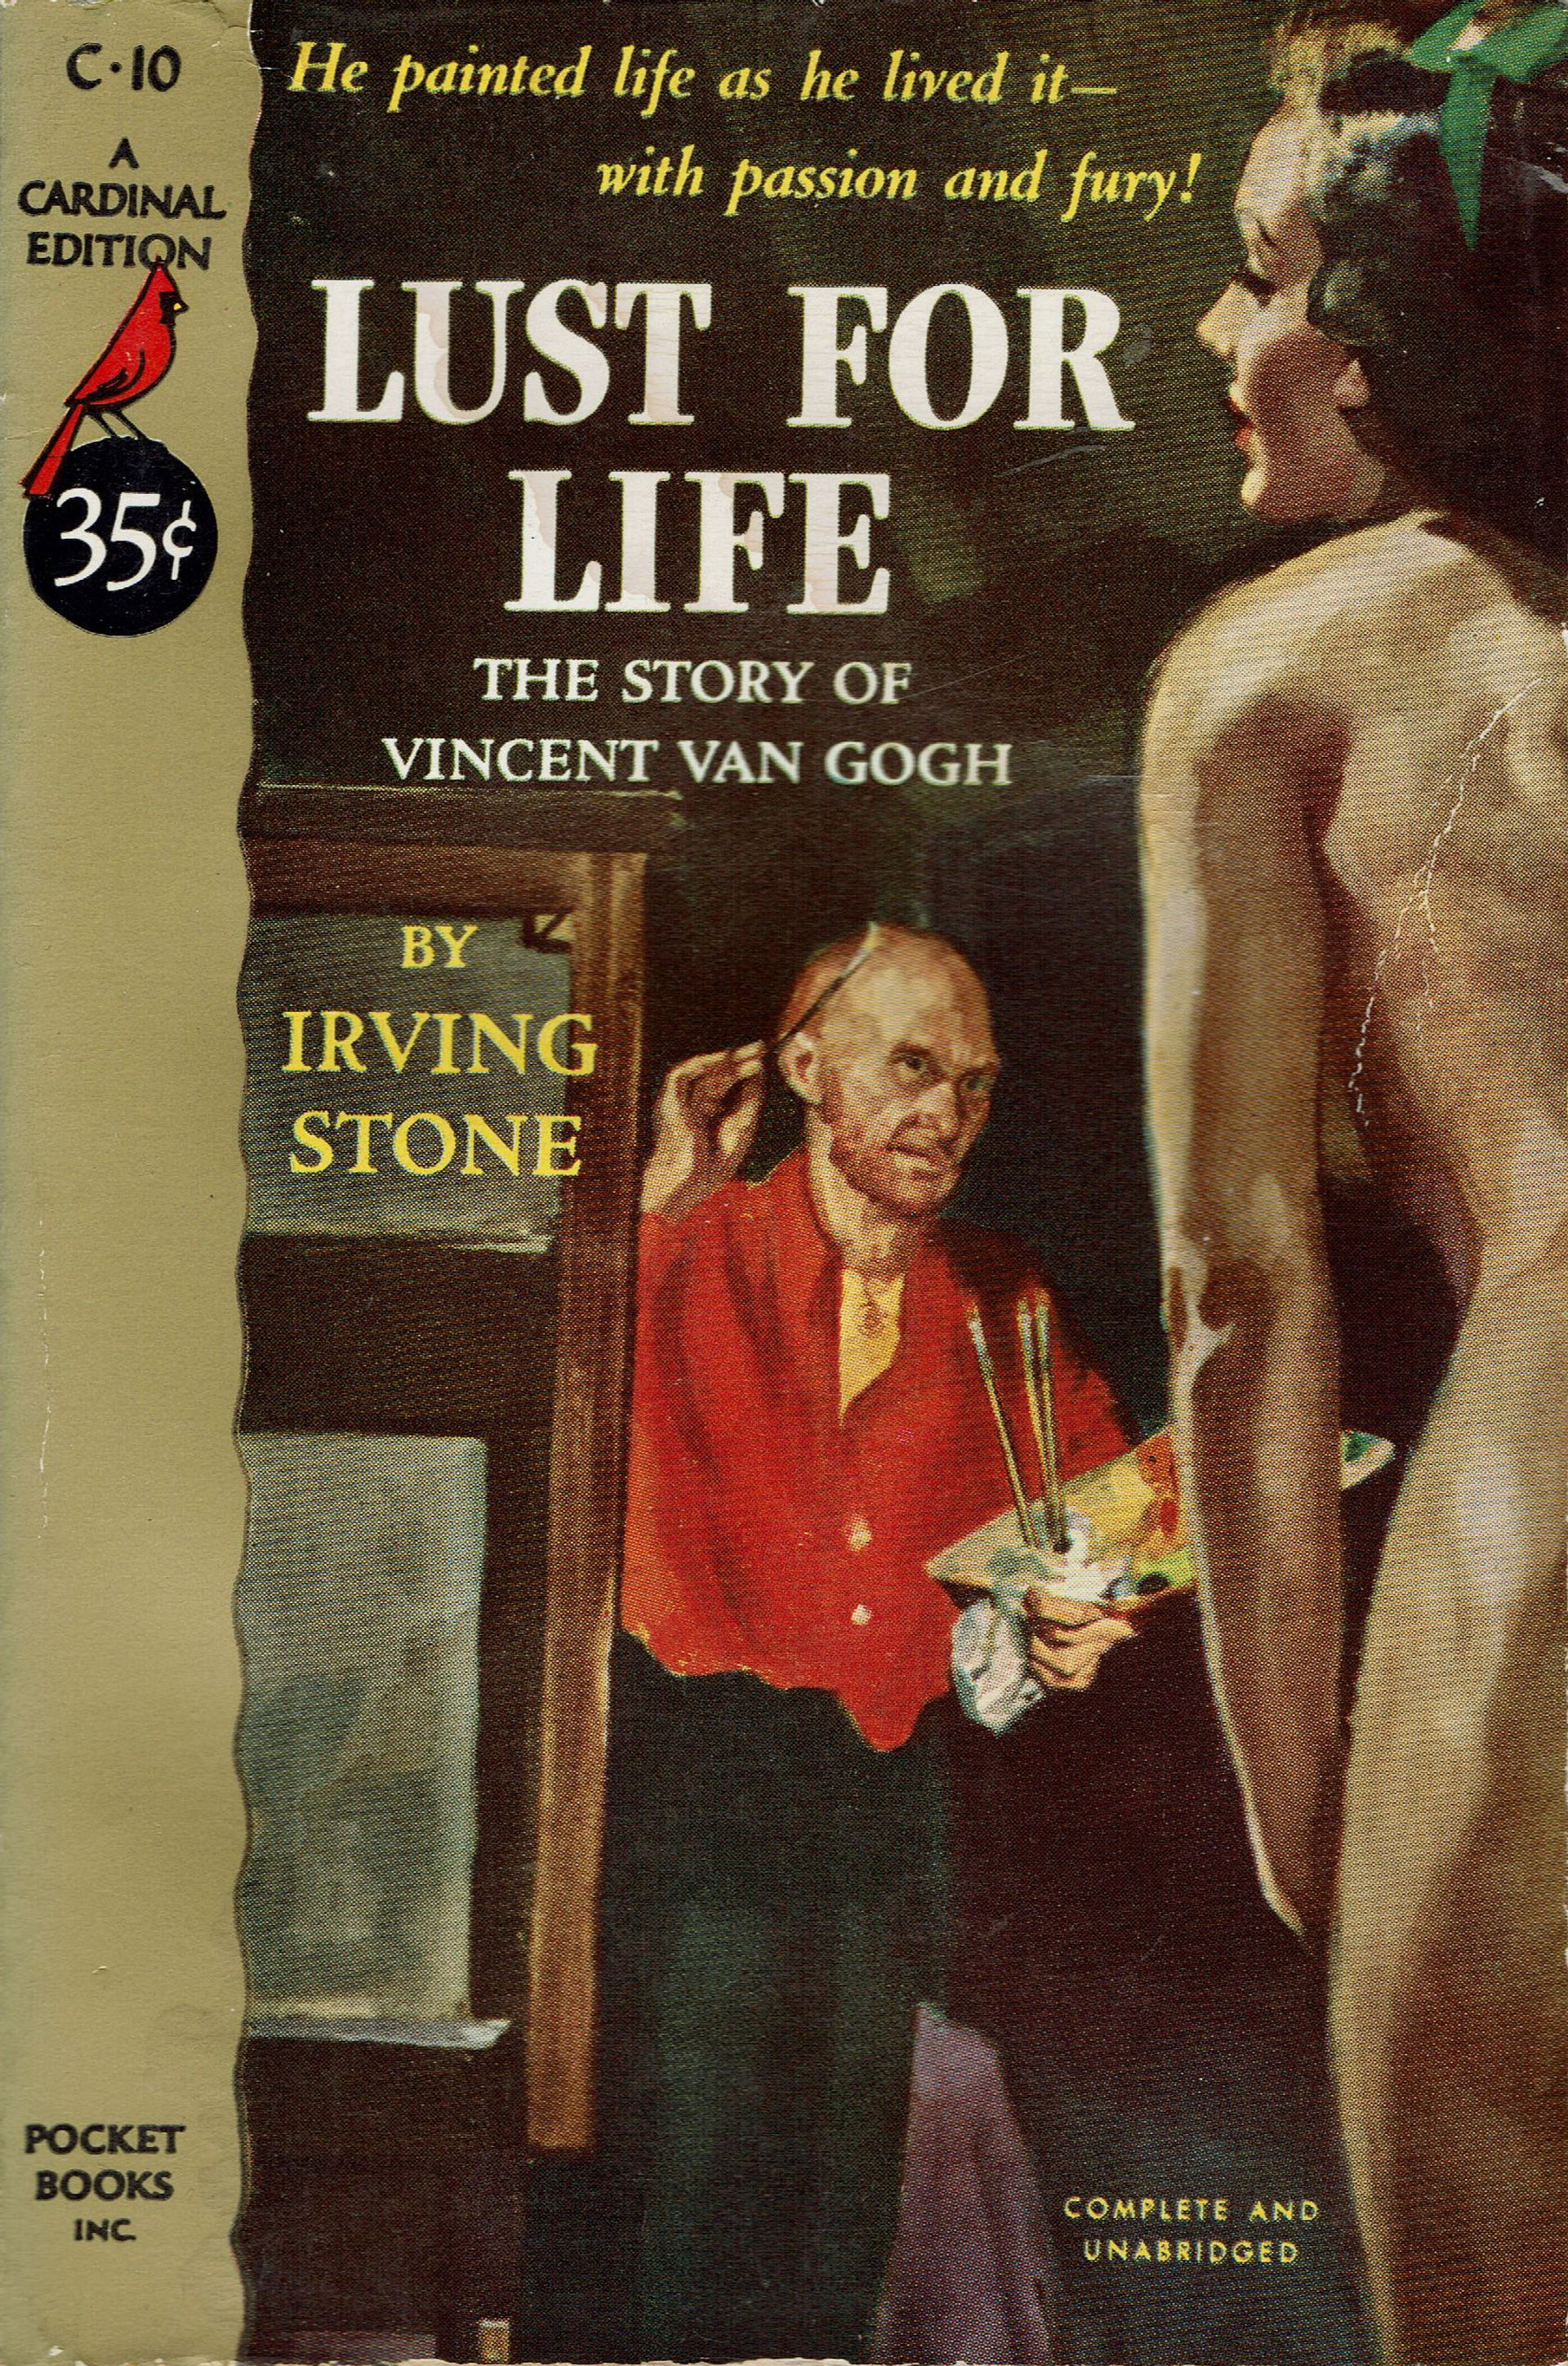 Cover of Irving Stone's novel Lust for Life: The Story of Vincent van Gogh, Pocket Books/Cardinal edition, 1951